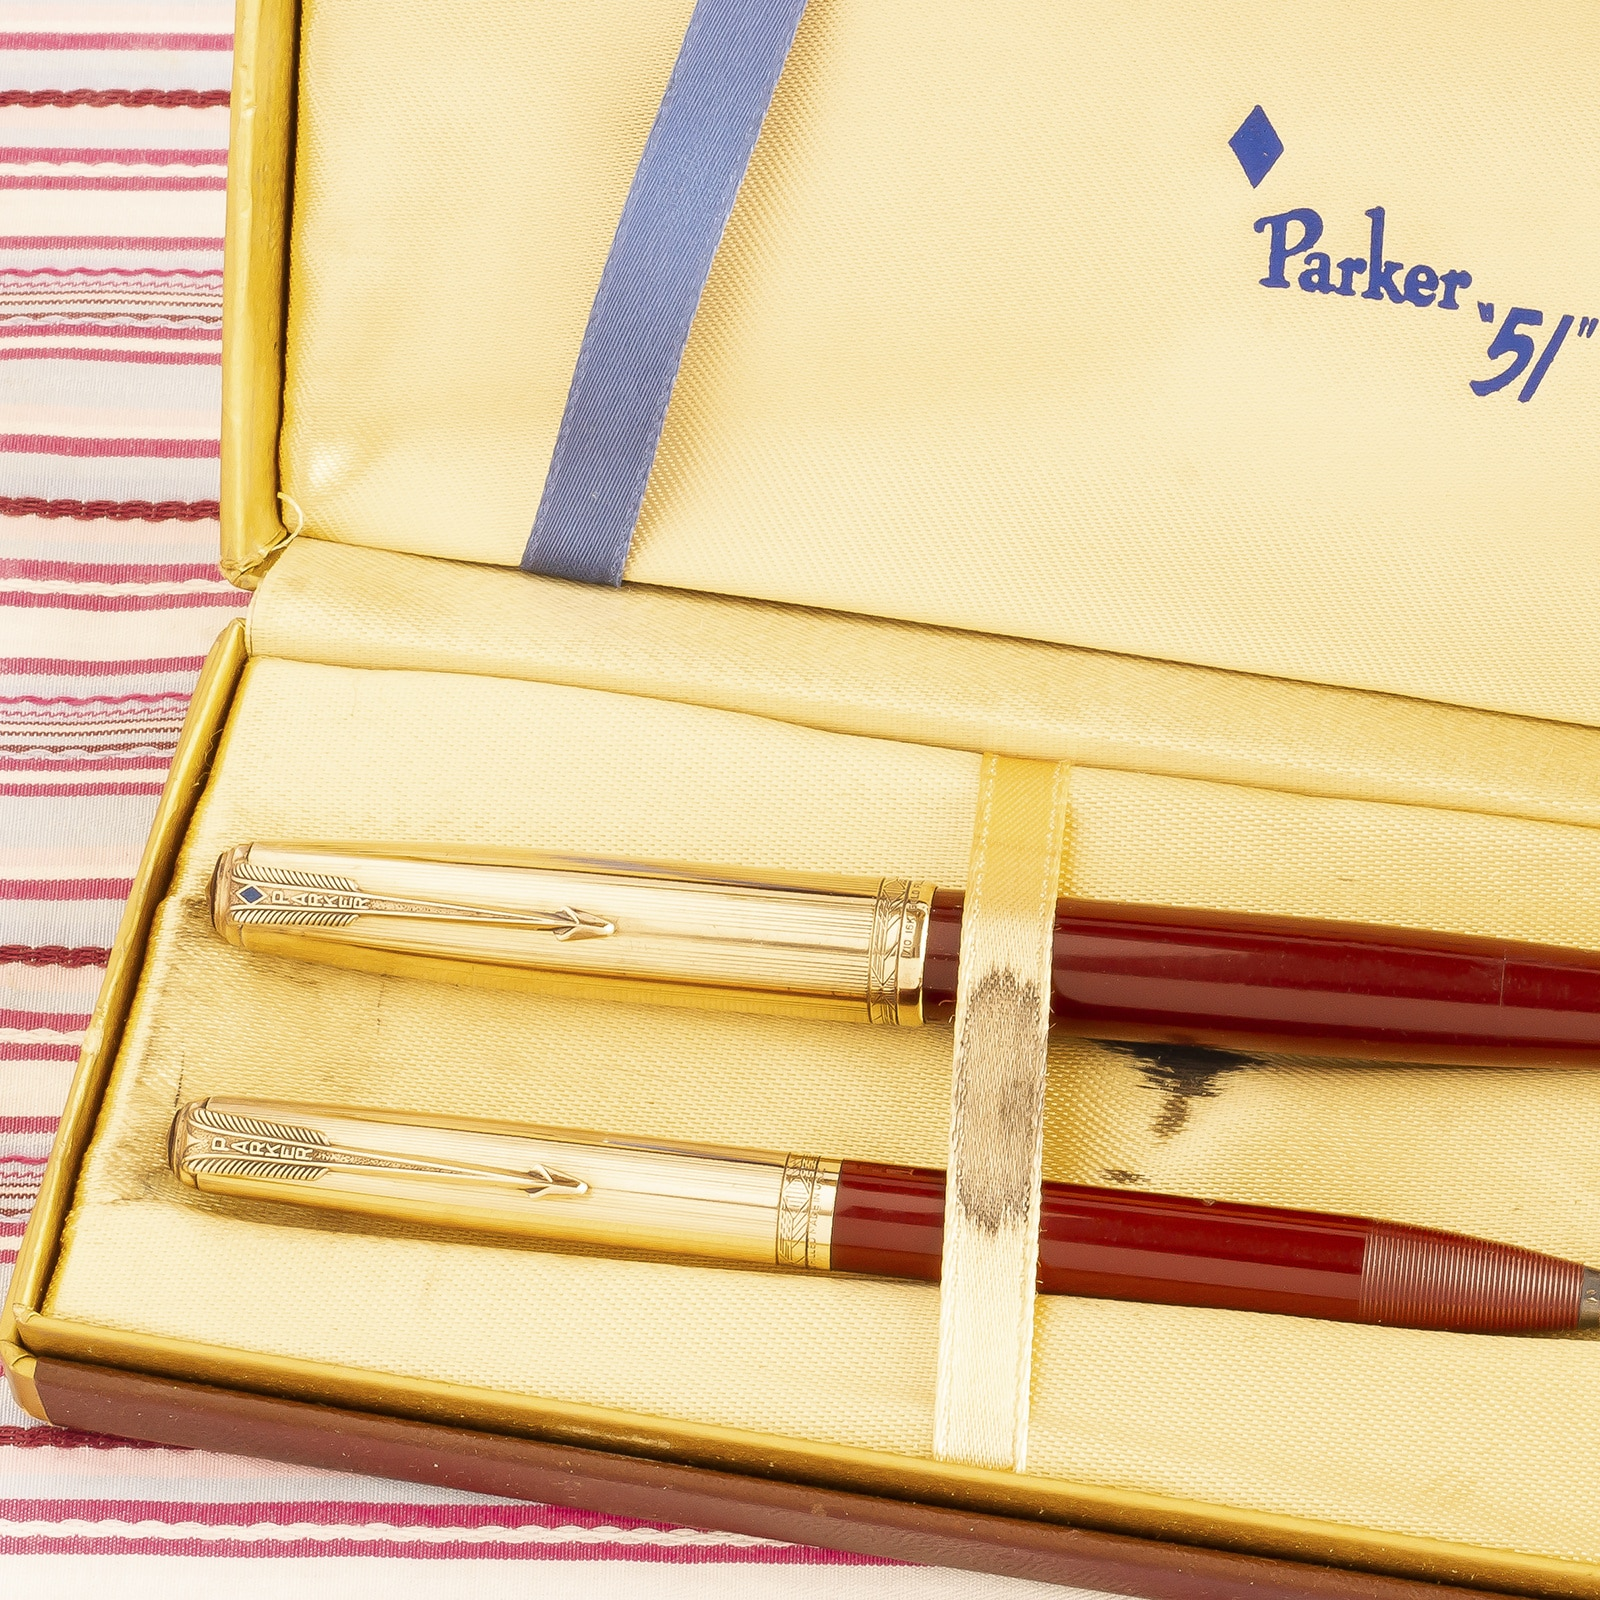 parker 51 deluxe double jewel 16k gold filled cap red maroon fonntain pen pencil box set